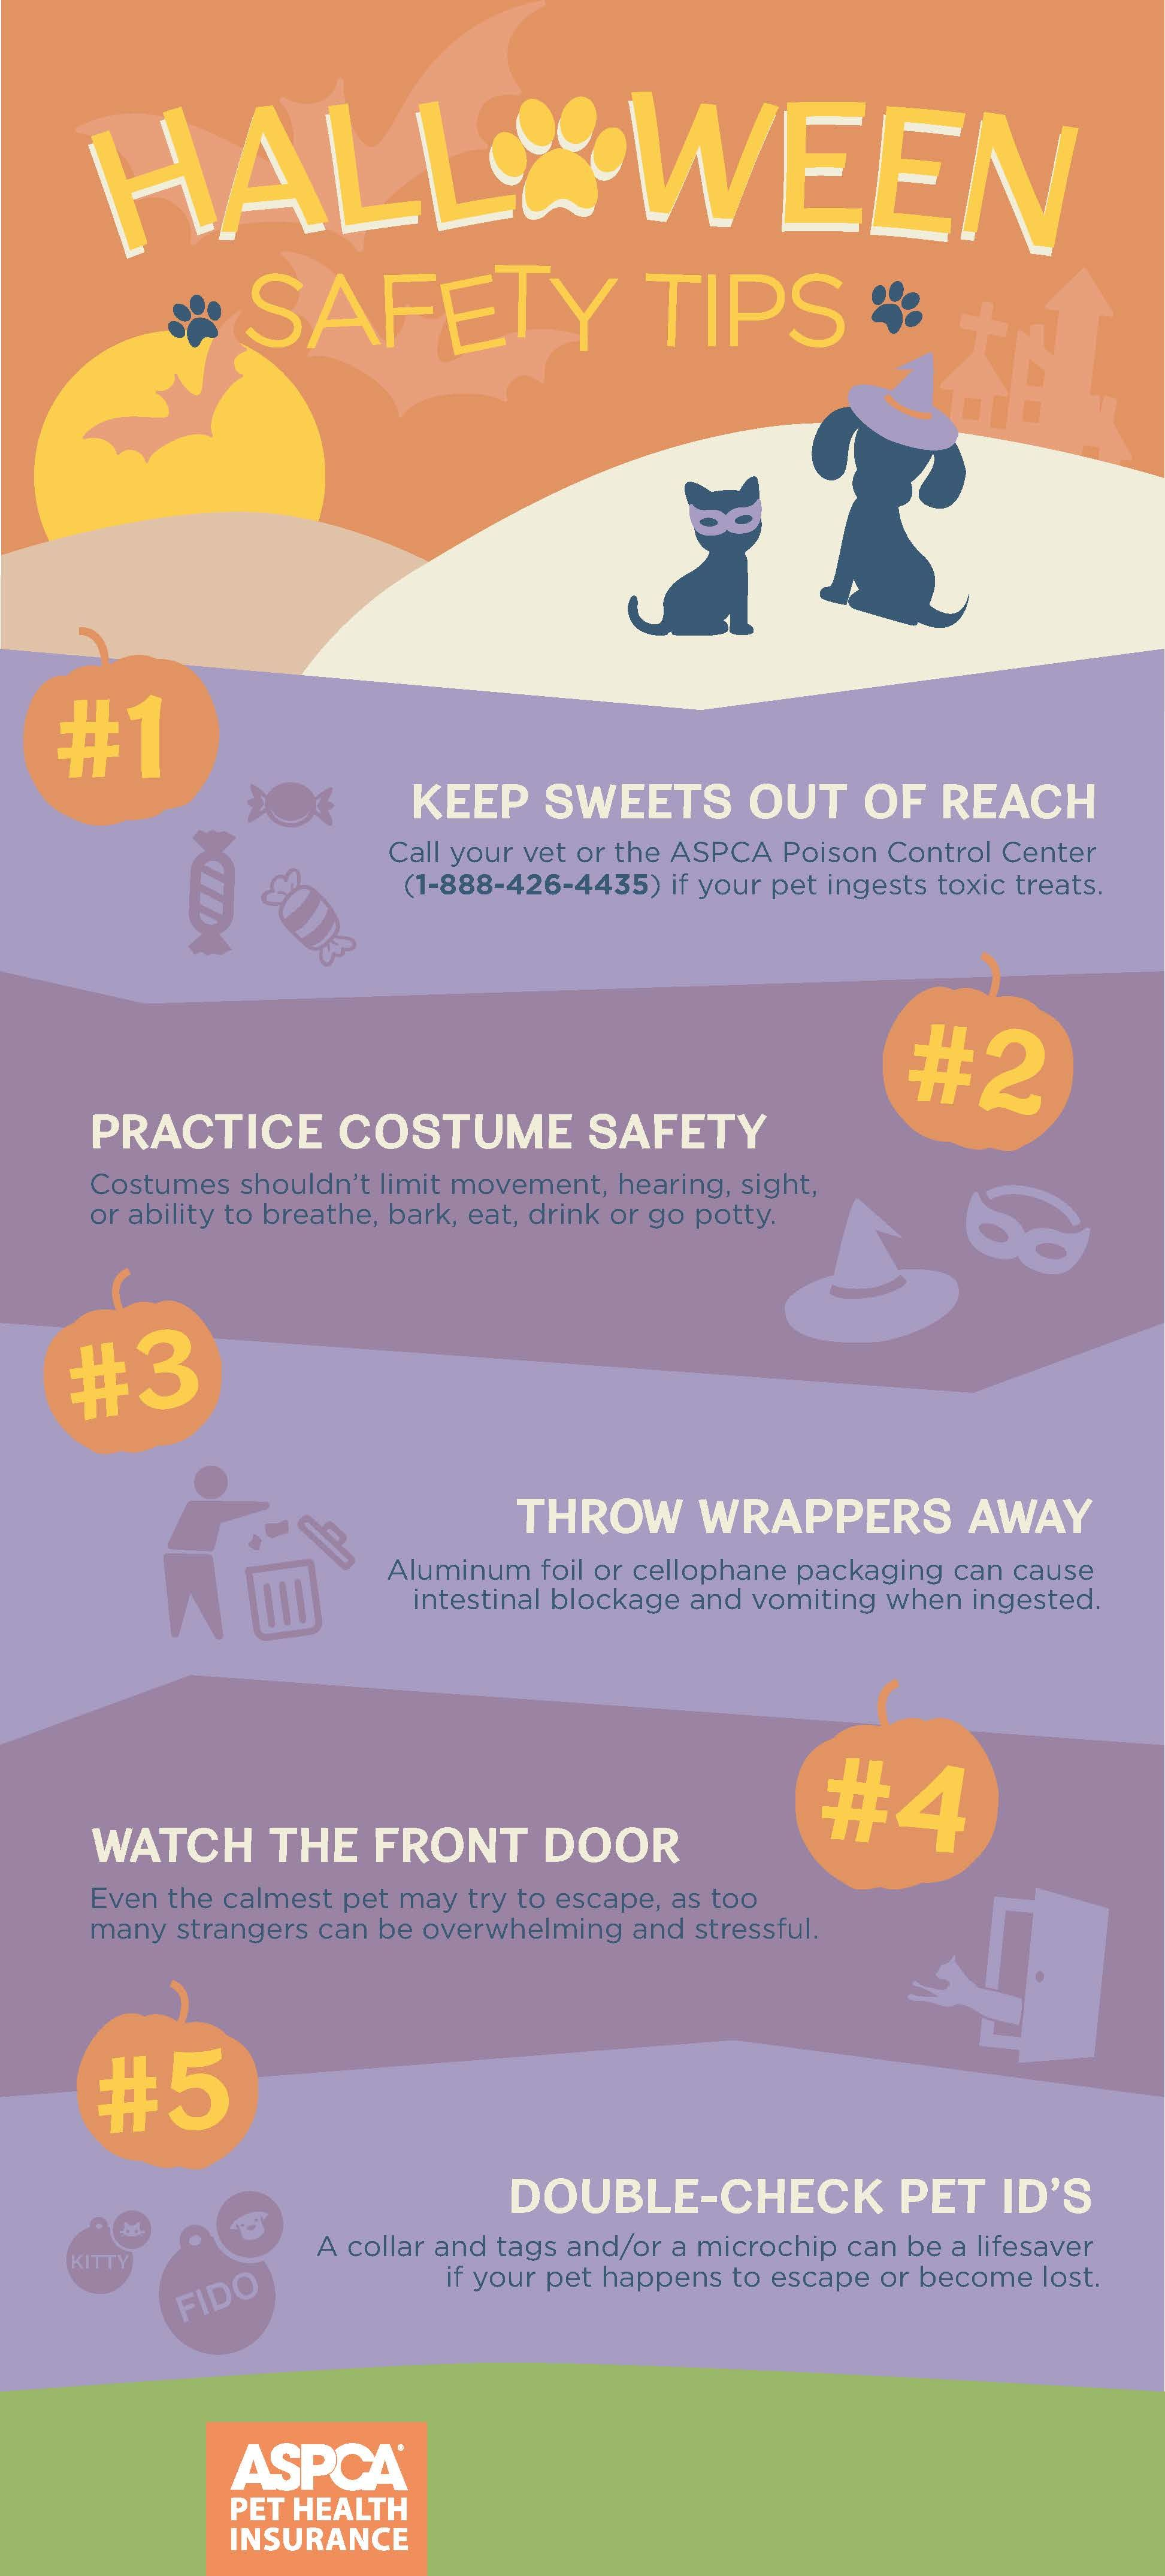 Halloween Safety Tips: Help avoid a scary accident with these tips!